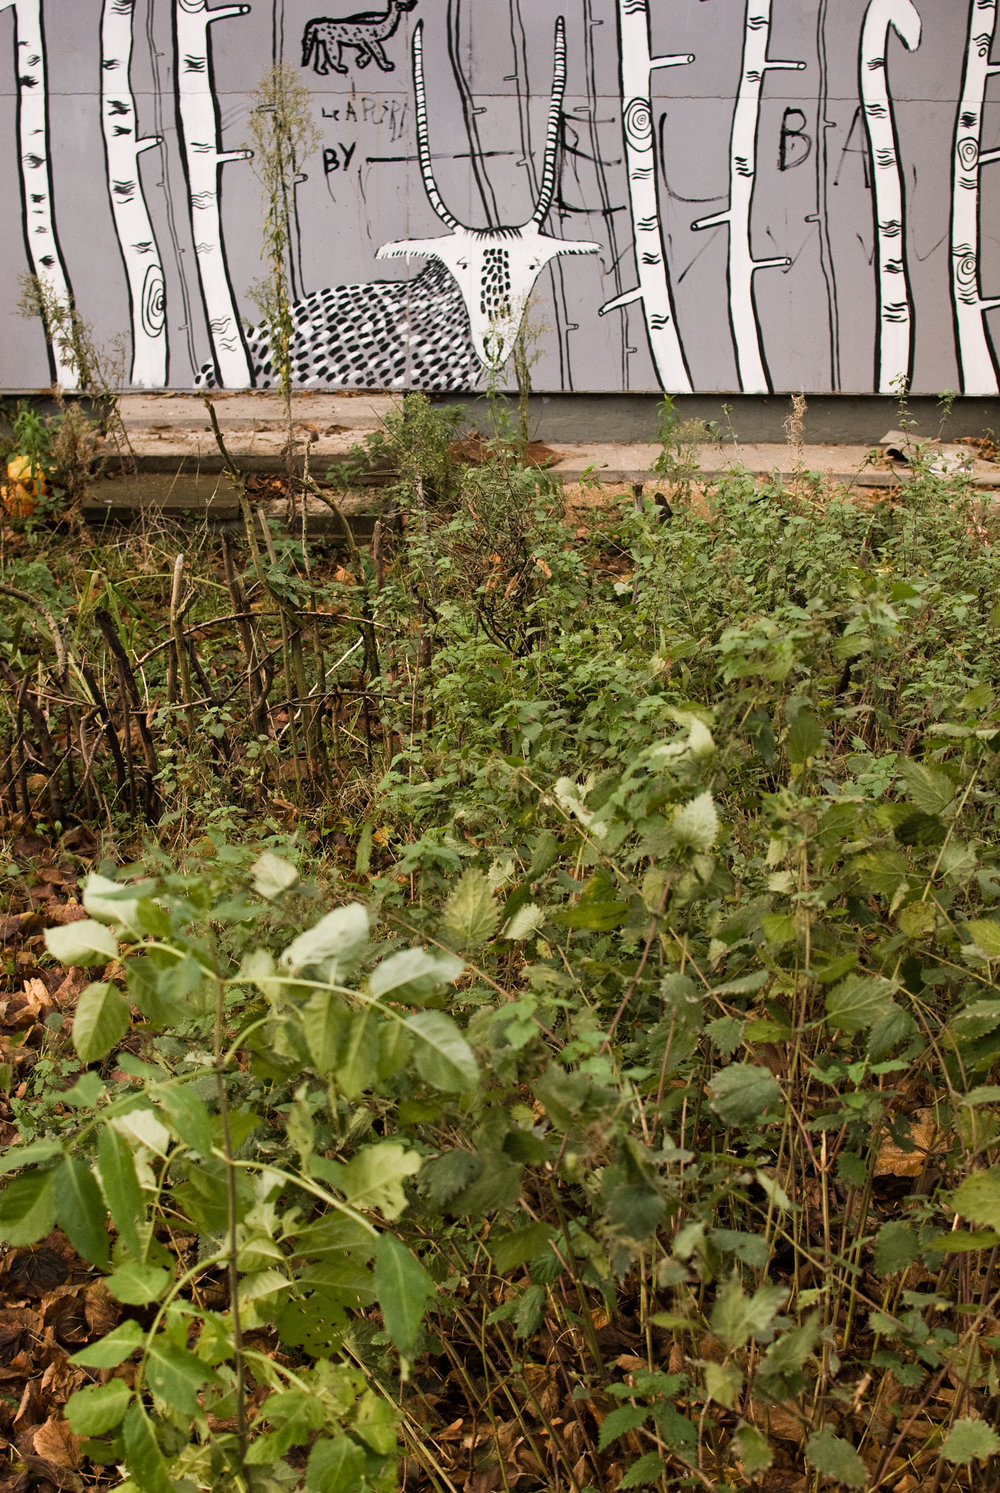 Georgina_cook_Heygate_estate_wildlife_garden.jpg